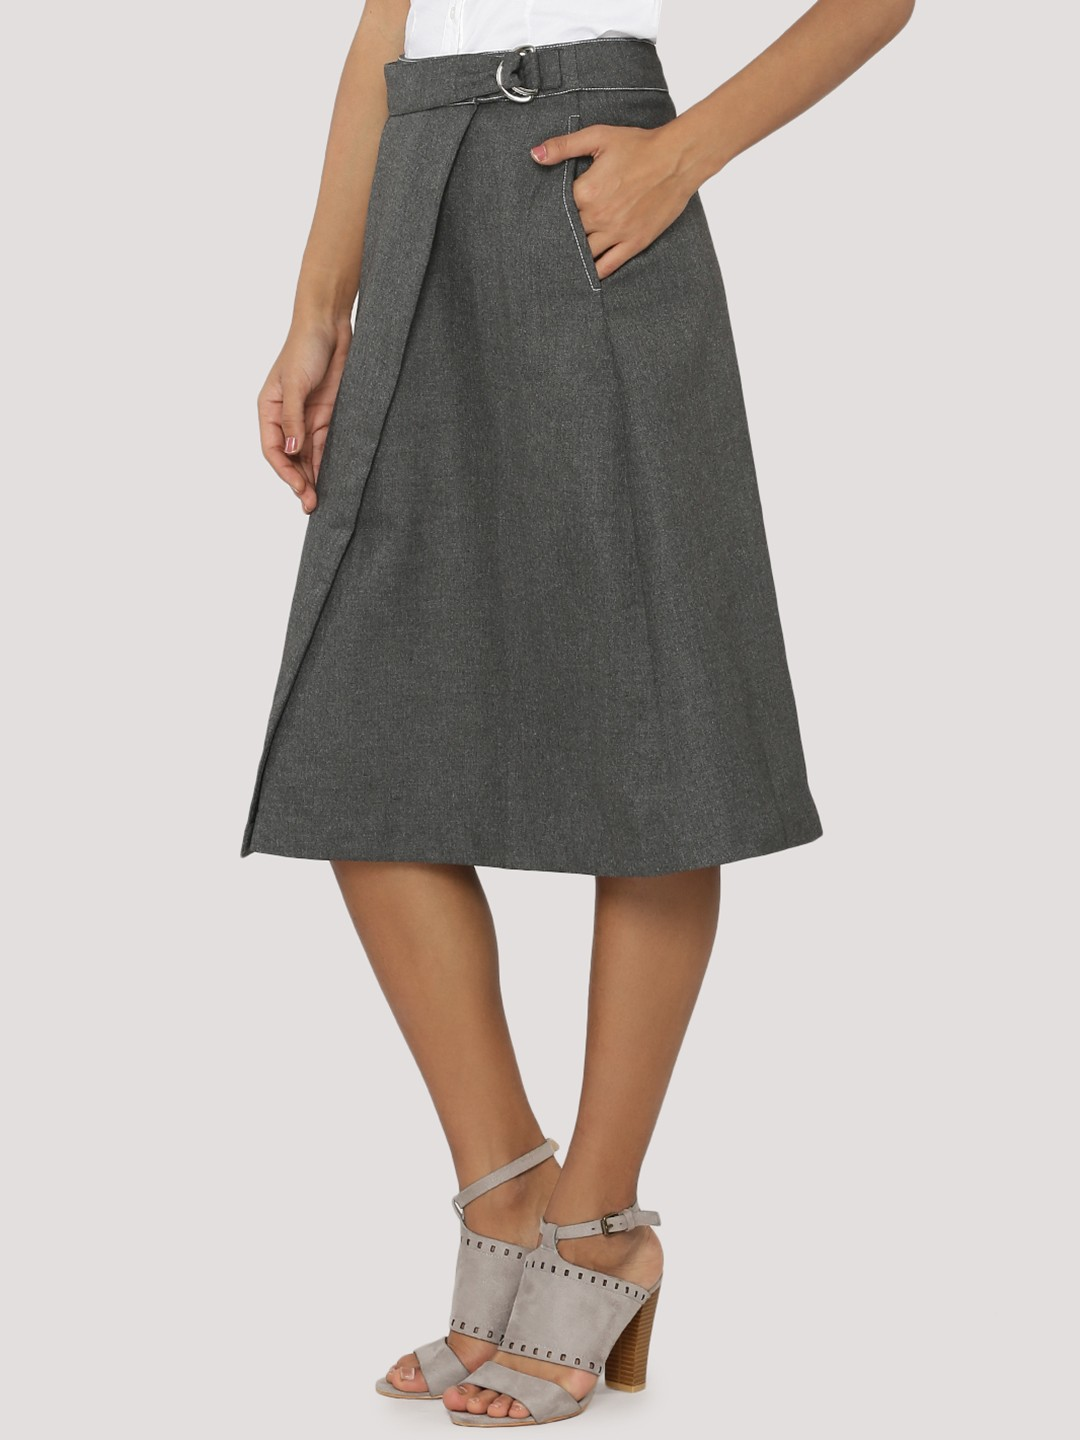 buy koovs wrap front a line skirt for s